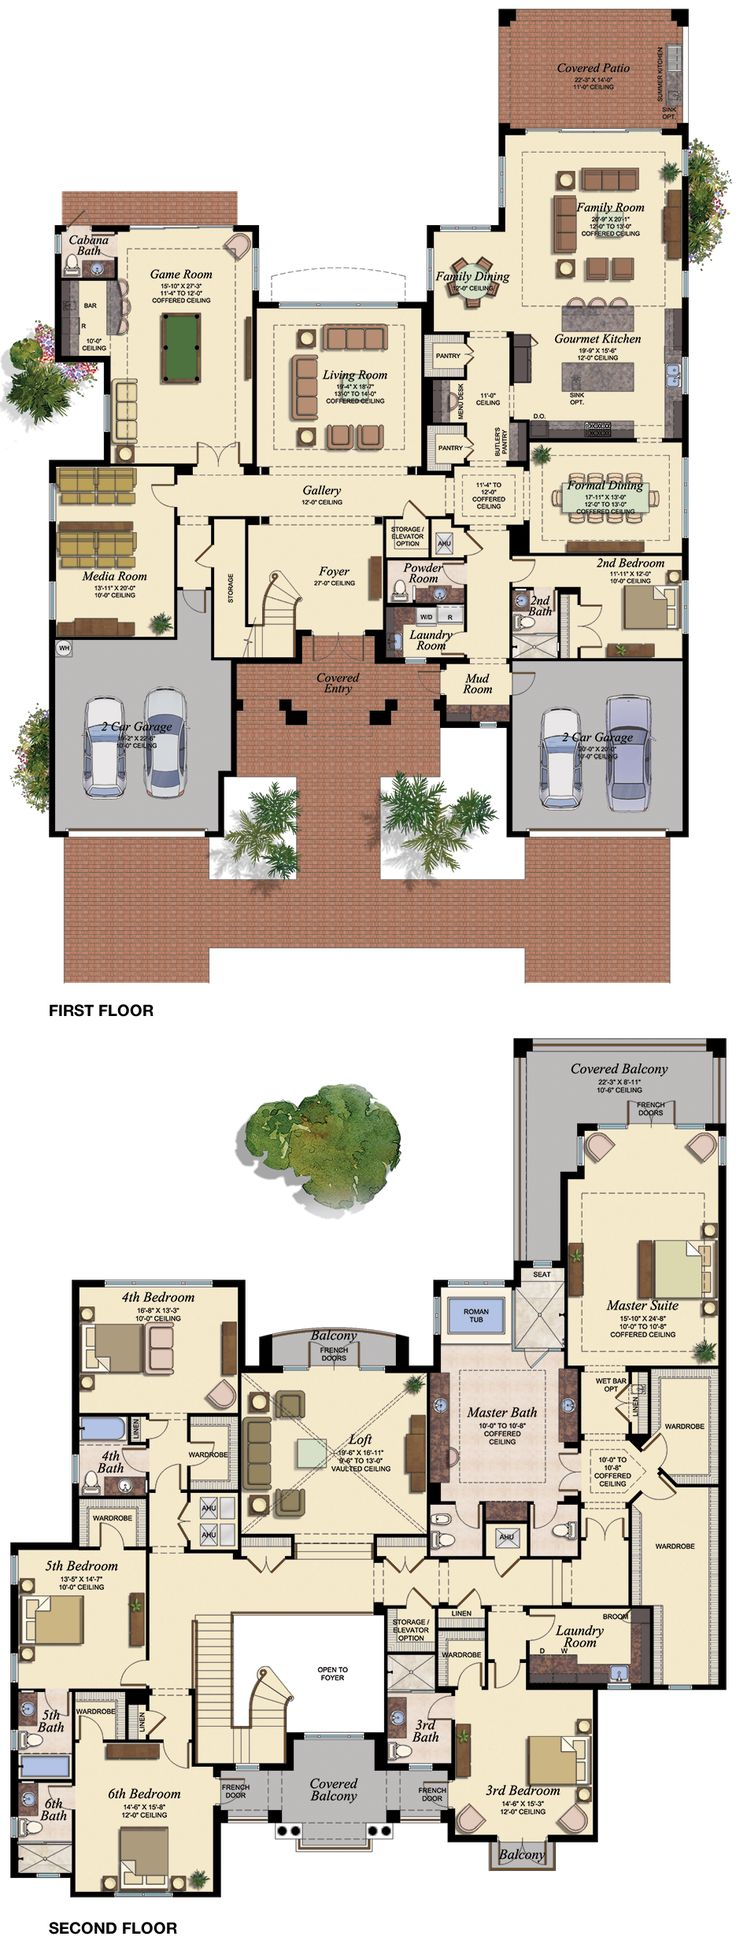 Colored House Floor Plans best 25+ 6 bedroom house plans ideas only on pinterest